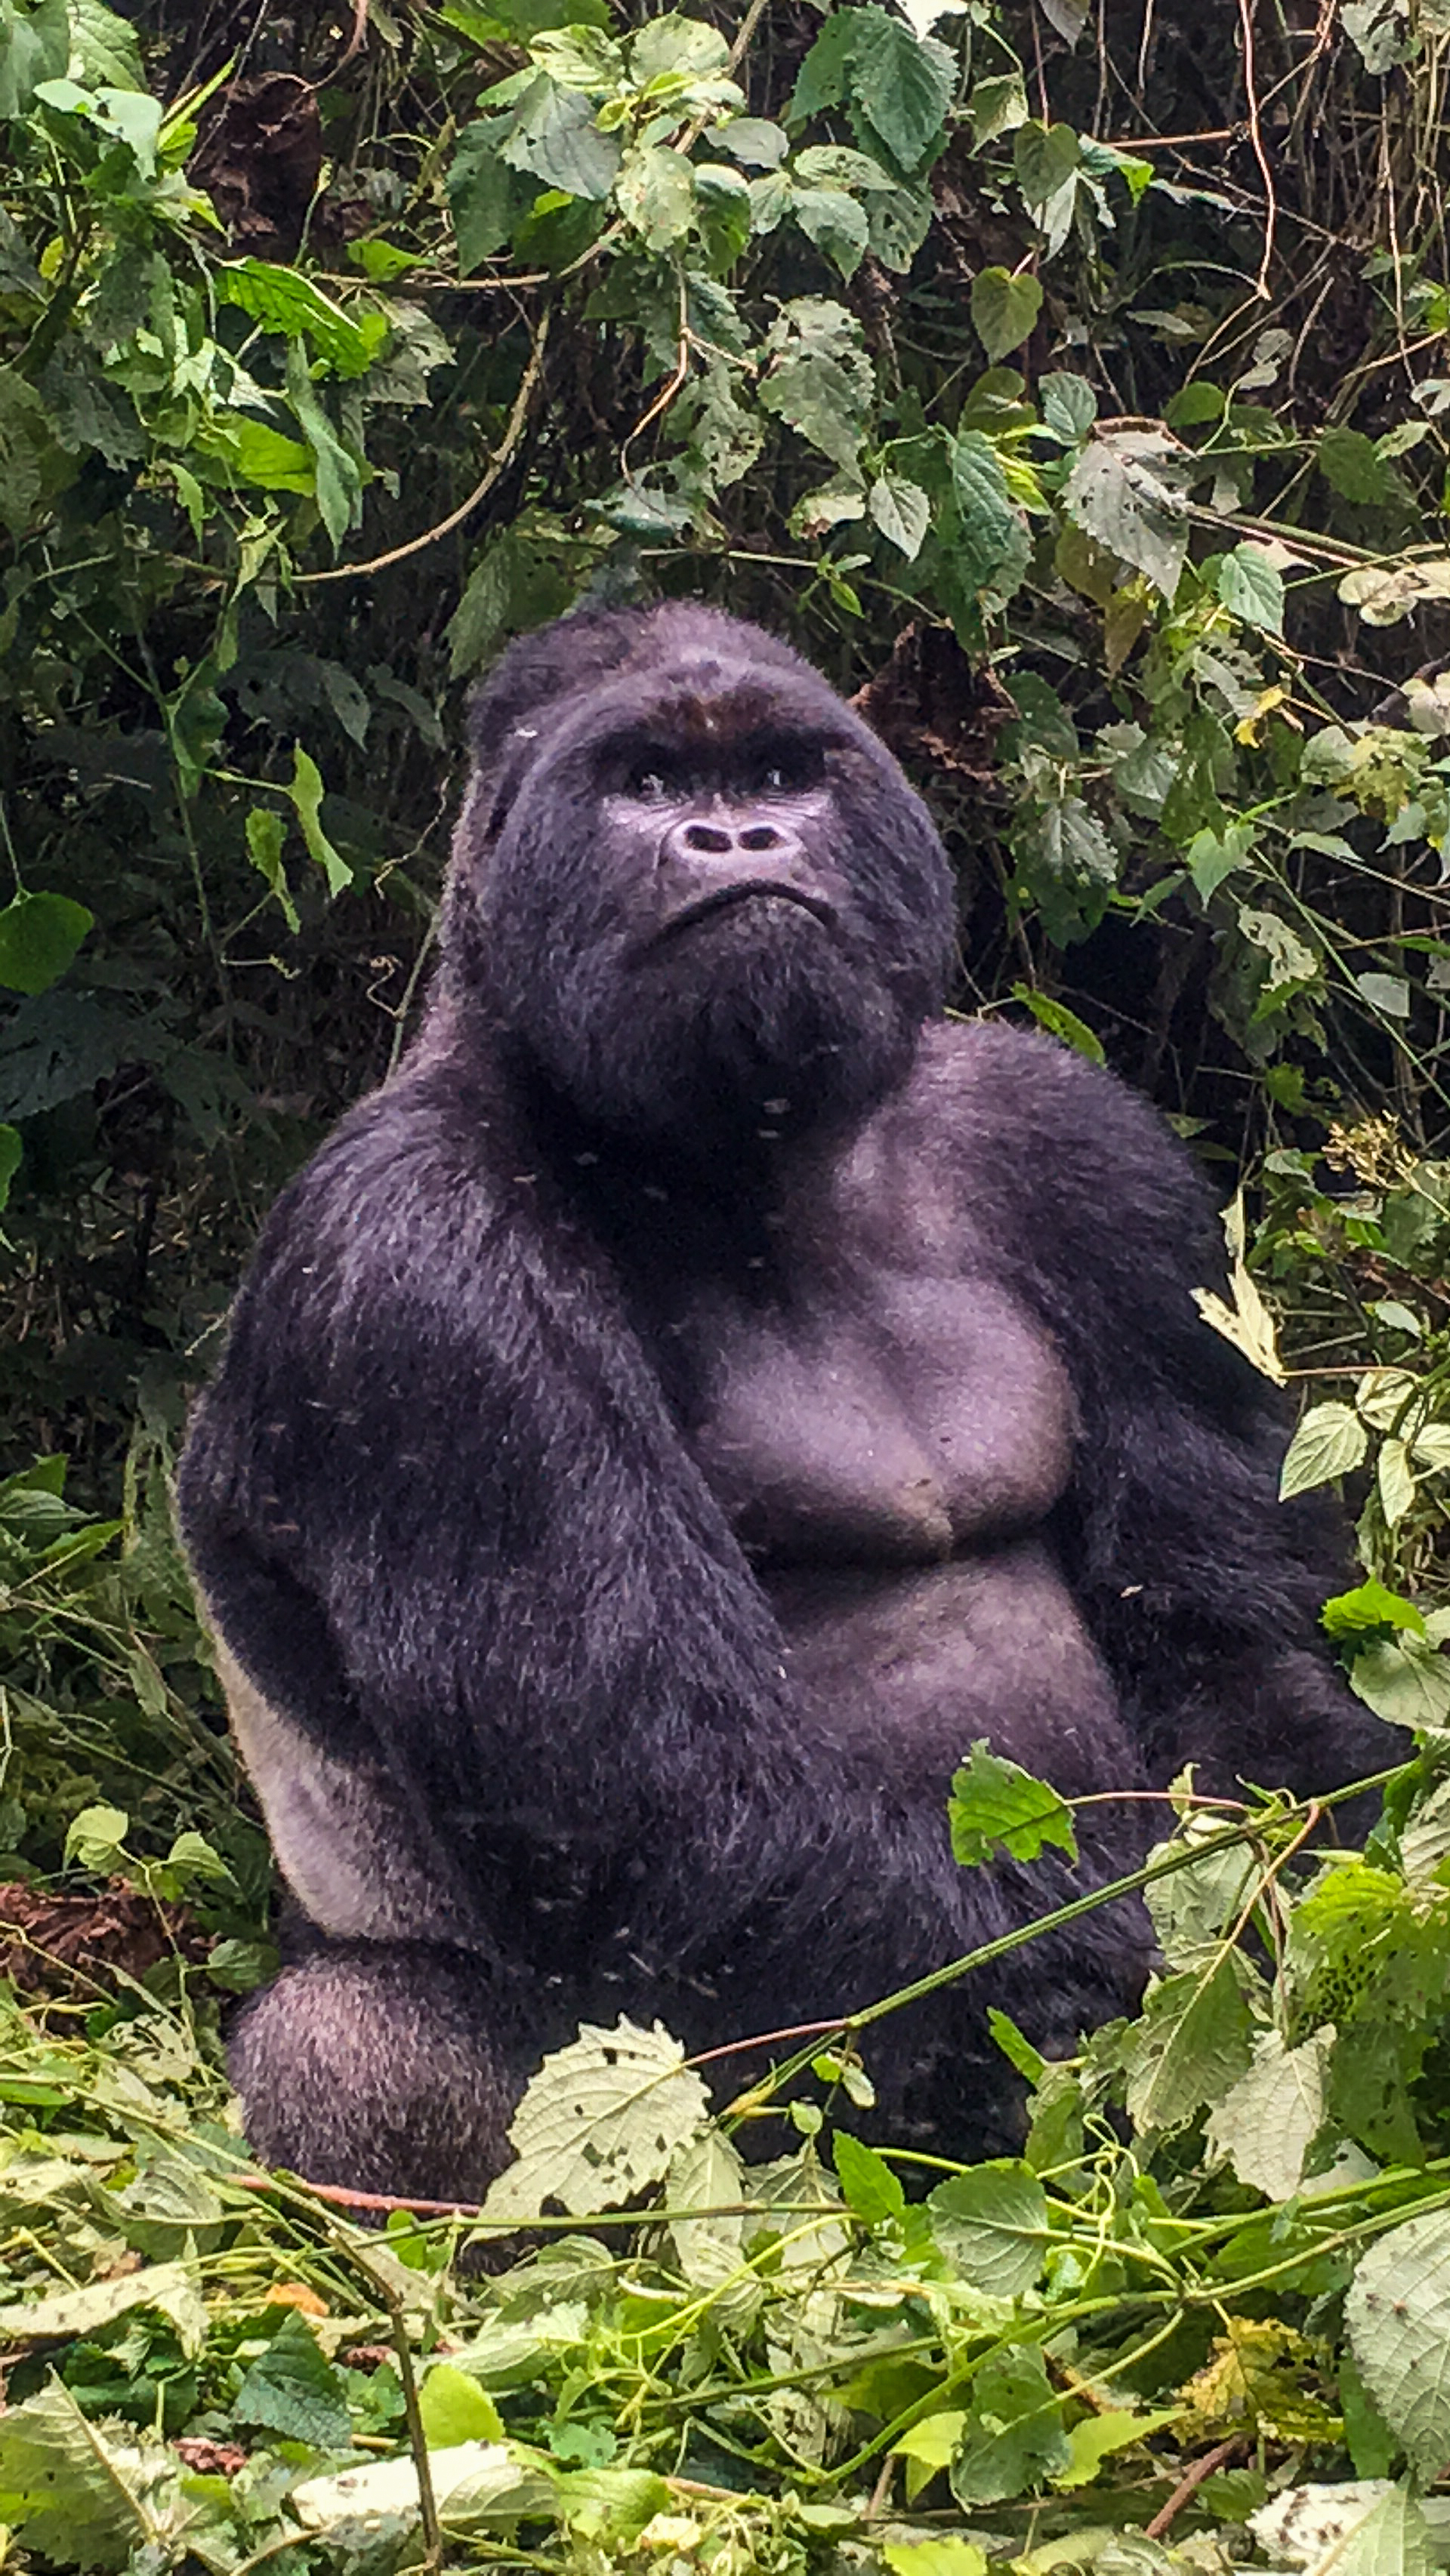 Silverback. Congo's Mountain Gorillas. Such gentle creatures that need us to care about the protection of their home and their babies who are threatened by poachers everyday.